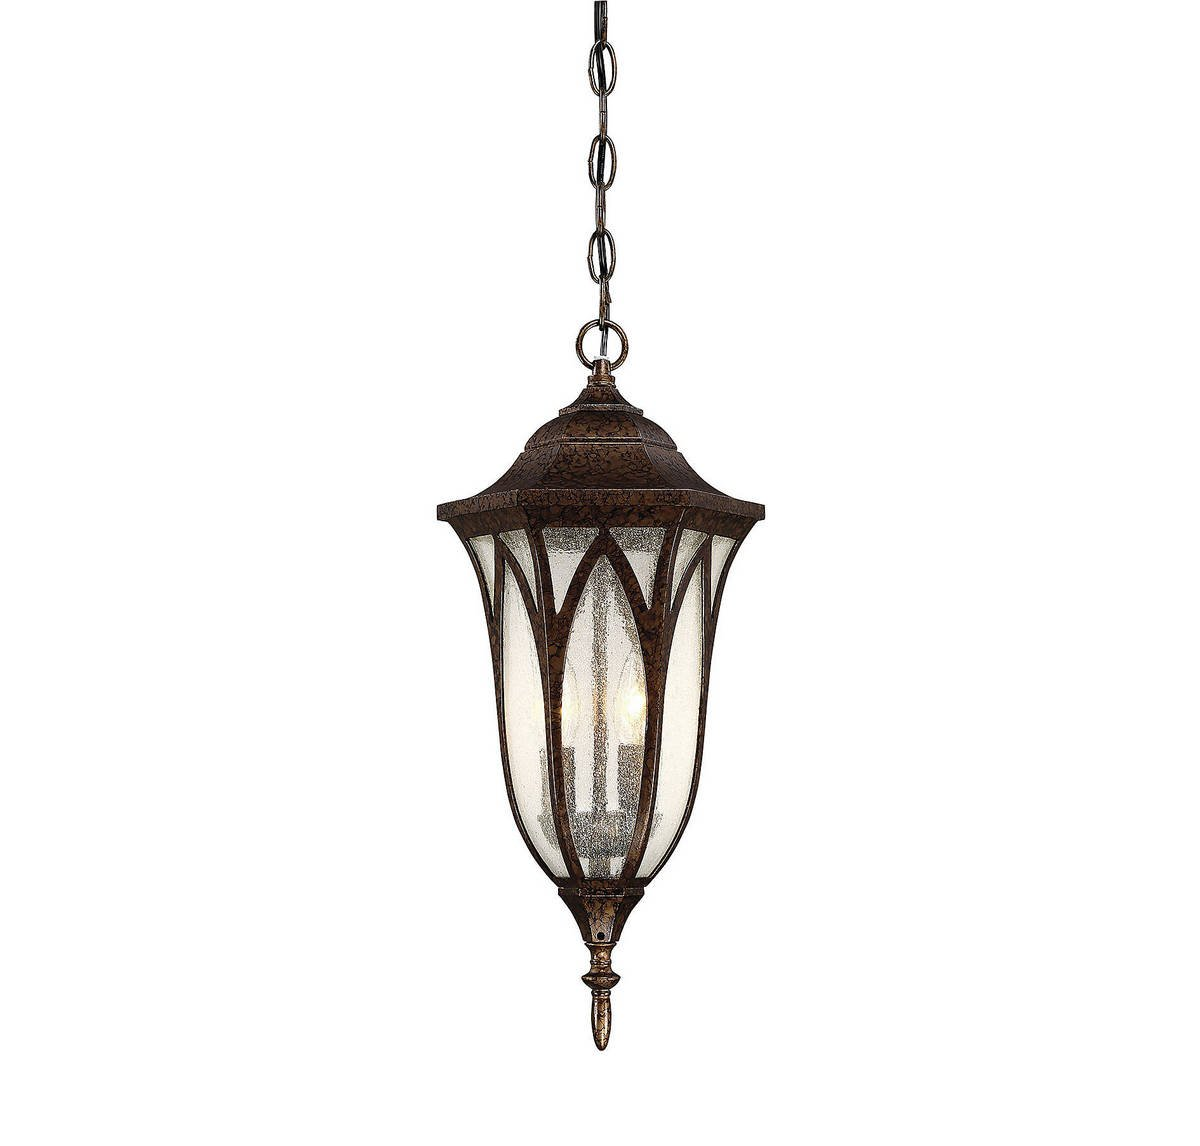 Savoy House 5-1242-56 Dayton Outdoor Hanging Lantern in New Tortoise Shell